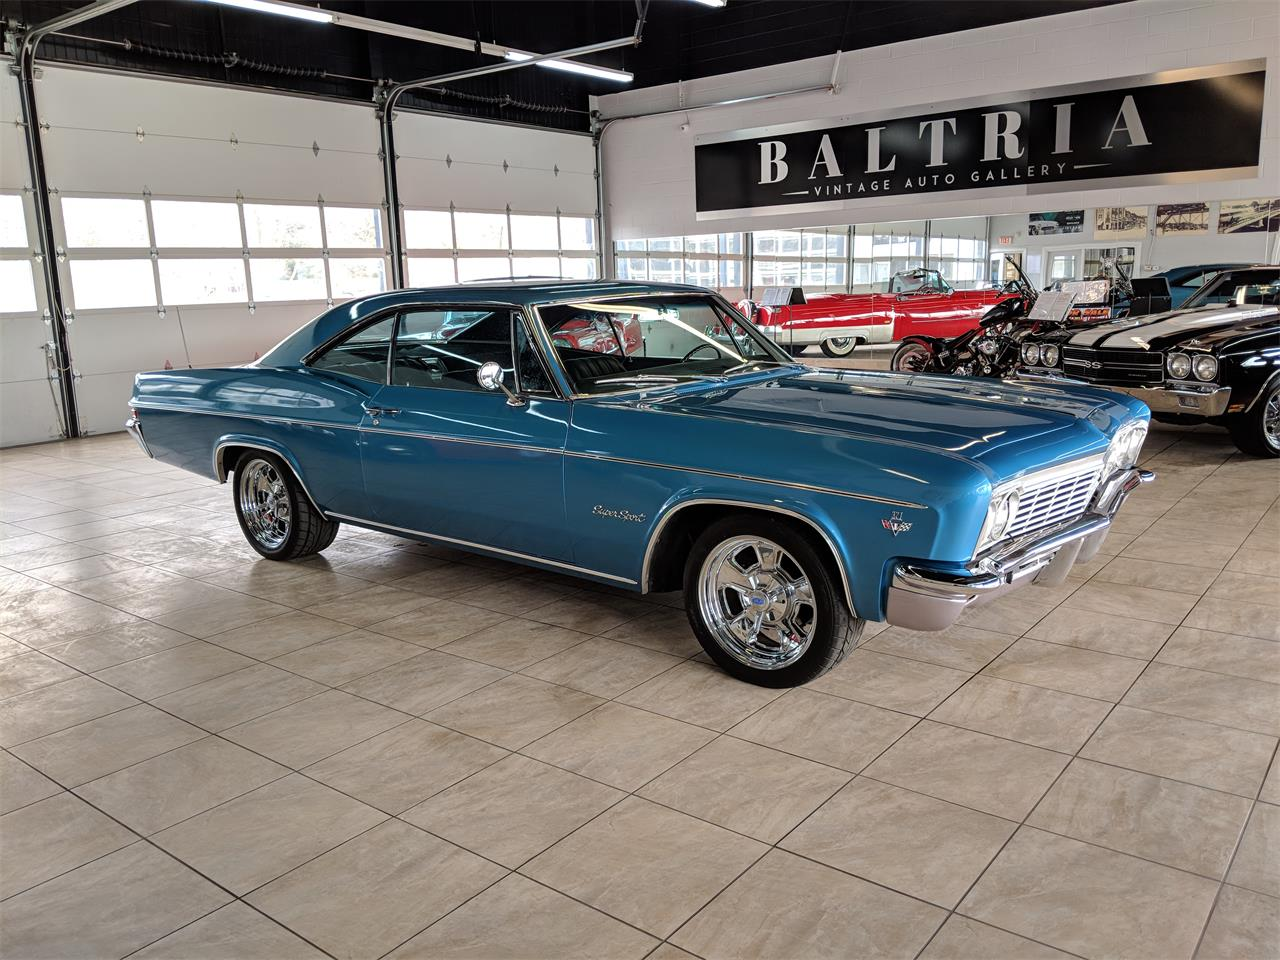 Large Picture of Classic 1966 Impala SS located in Saint Charles Illinois - $32,900.00 Offered by Baltria Vintage Auto Gallery - N62W